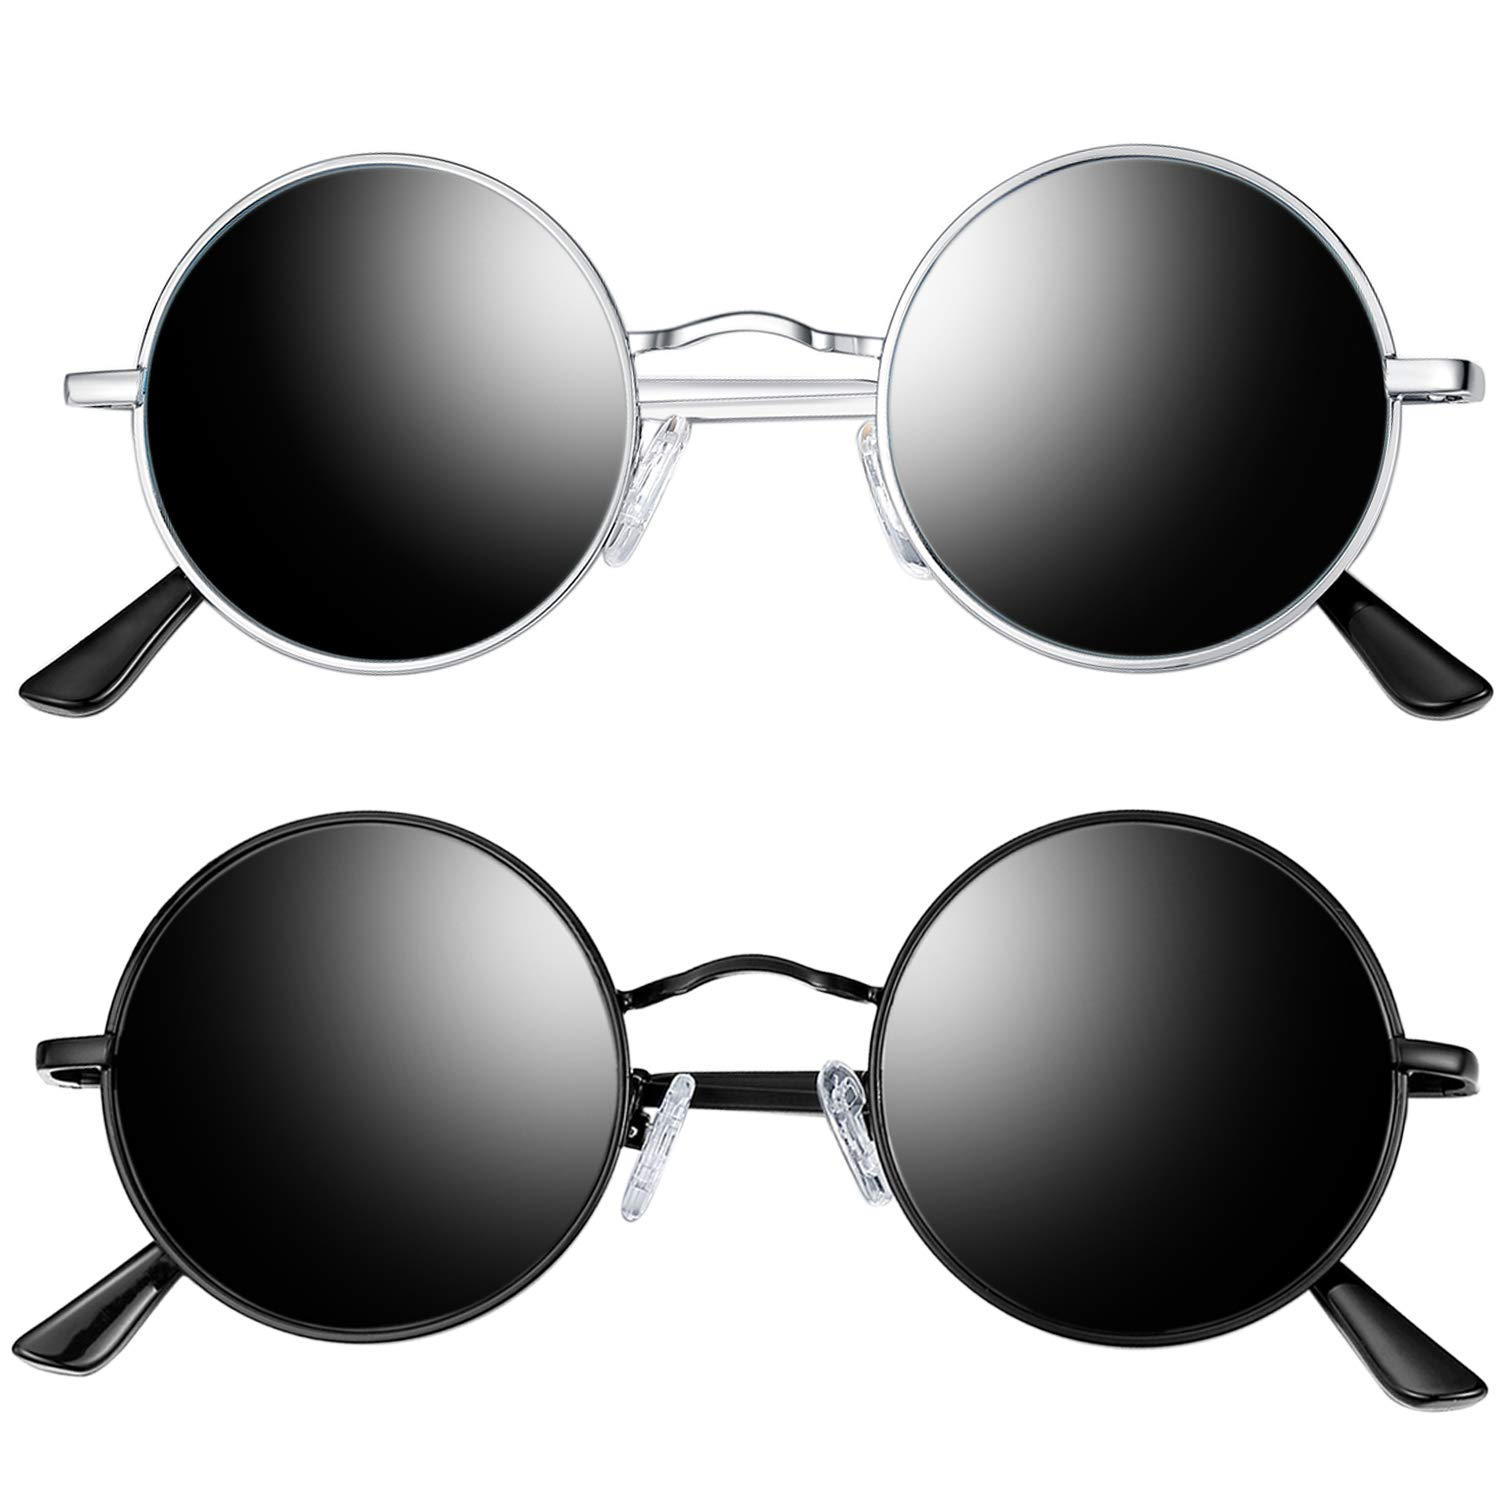 Amazon.com: Joopin Polarized Round Sunglasses for Men and ...